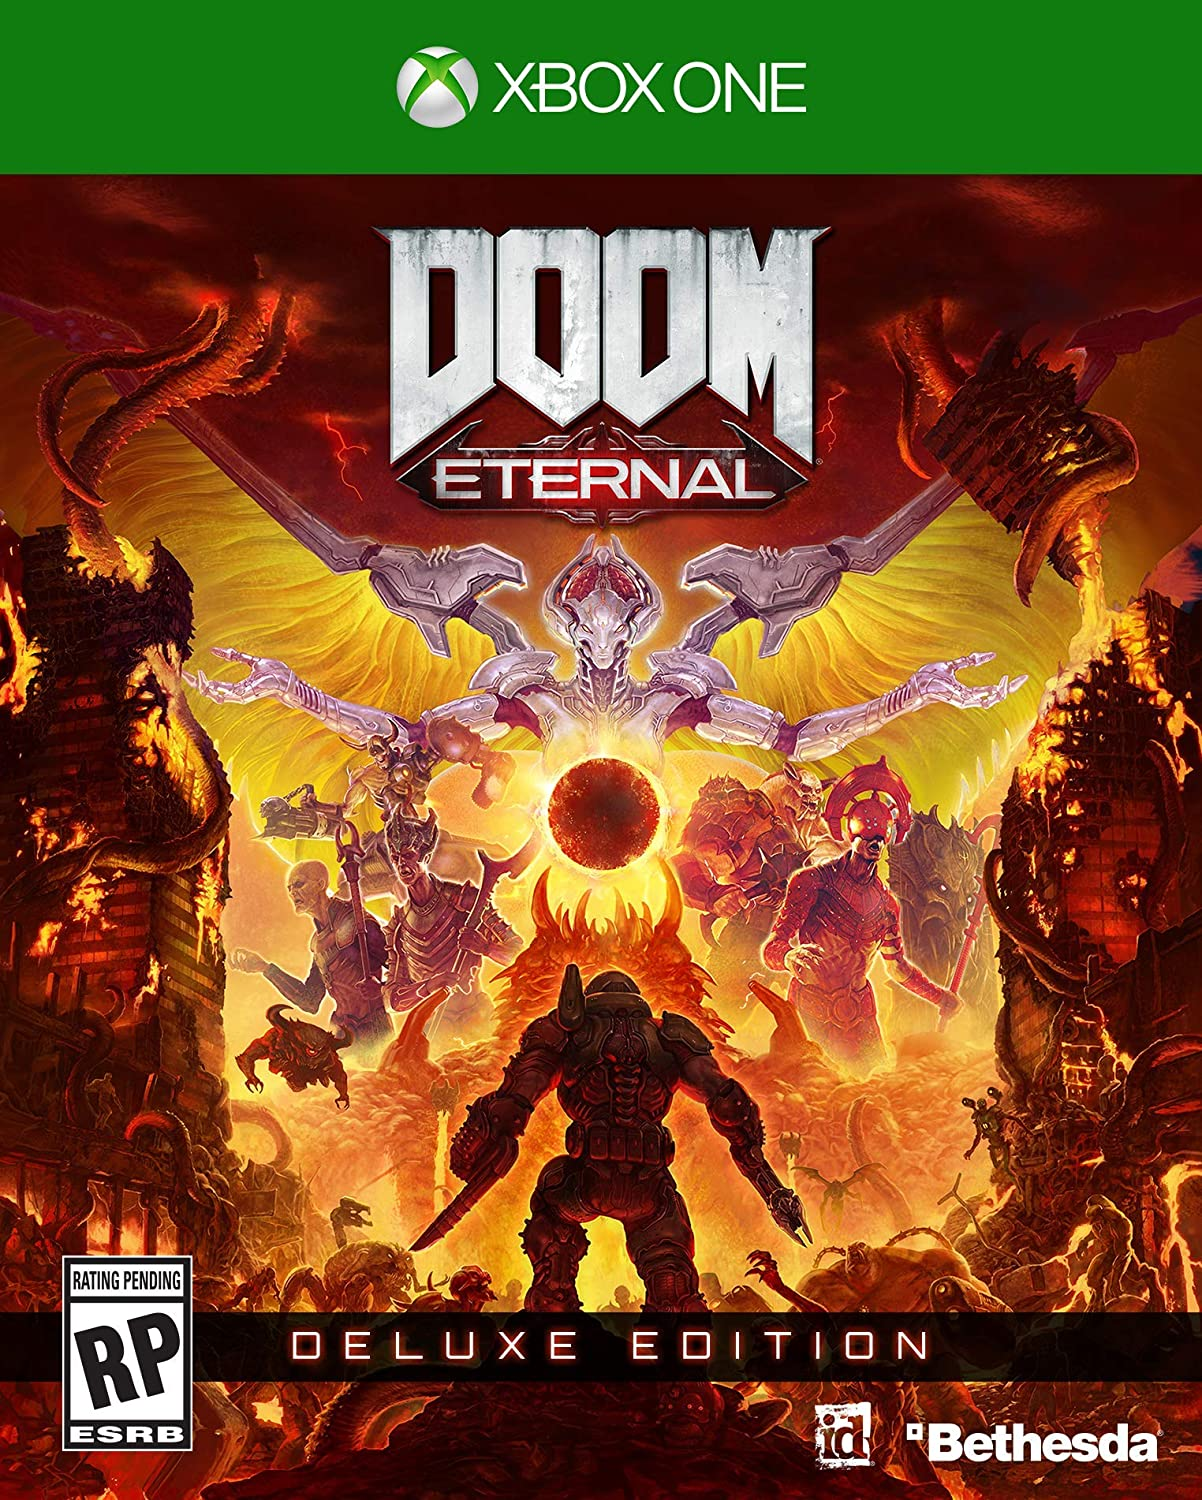 Amazon com: Doom Eternal - Xbox One Deluxe Edition: Video Games